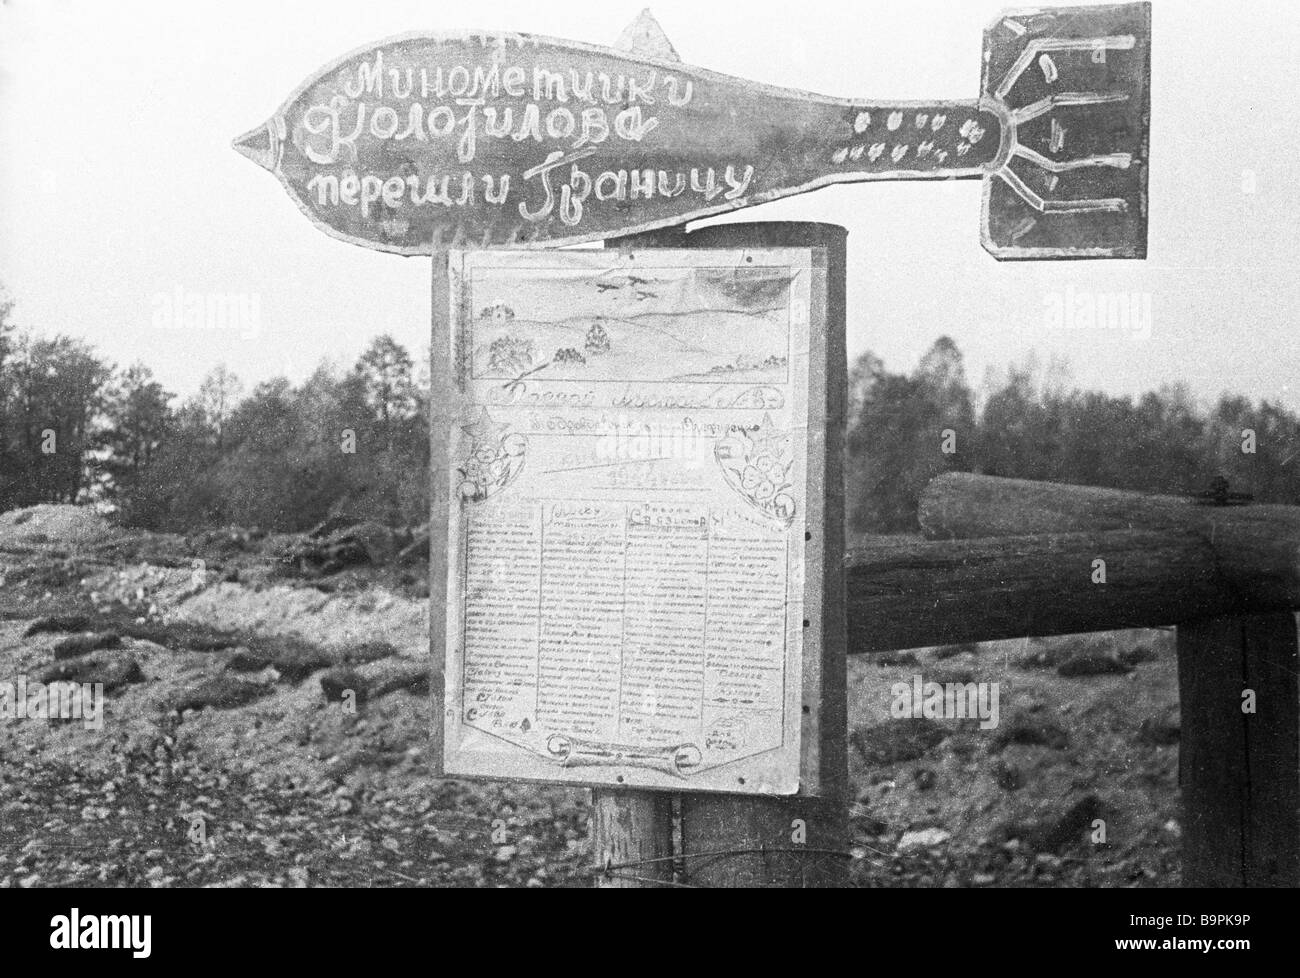 The sign saying Kolotilov s mortar men crossed the border in the shape of a mortar shell on the border of Eastern - Stock Image